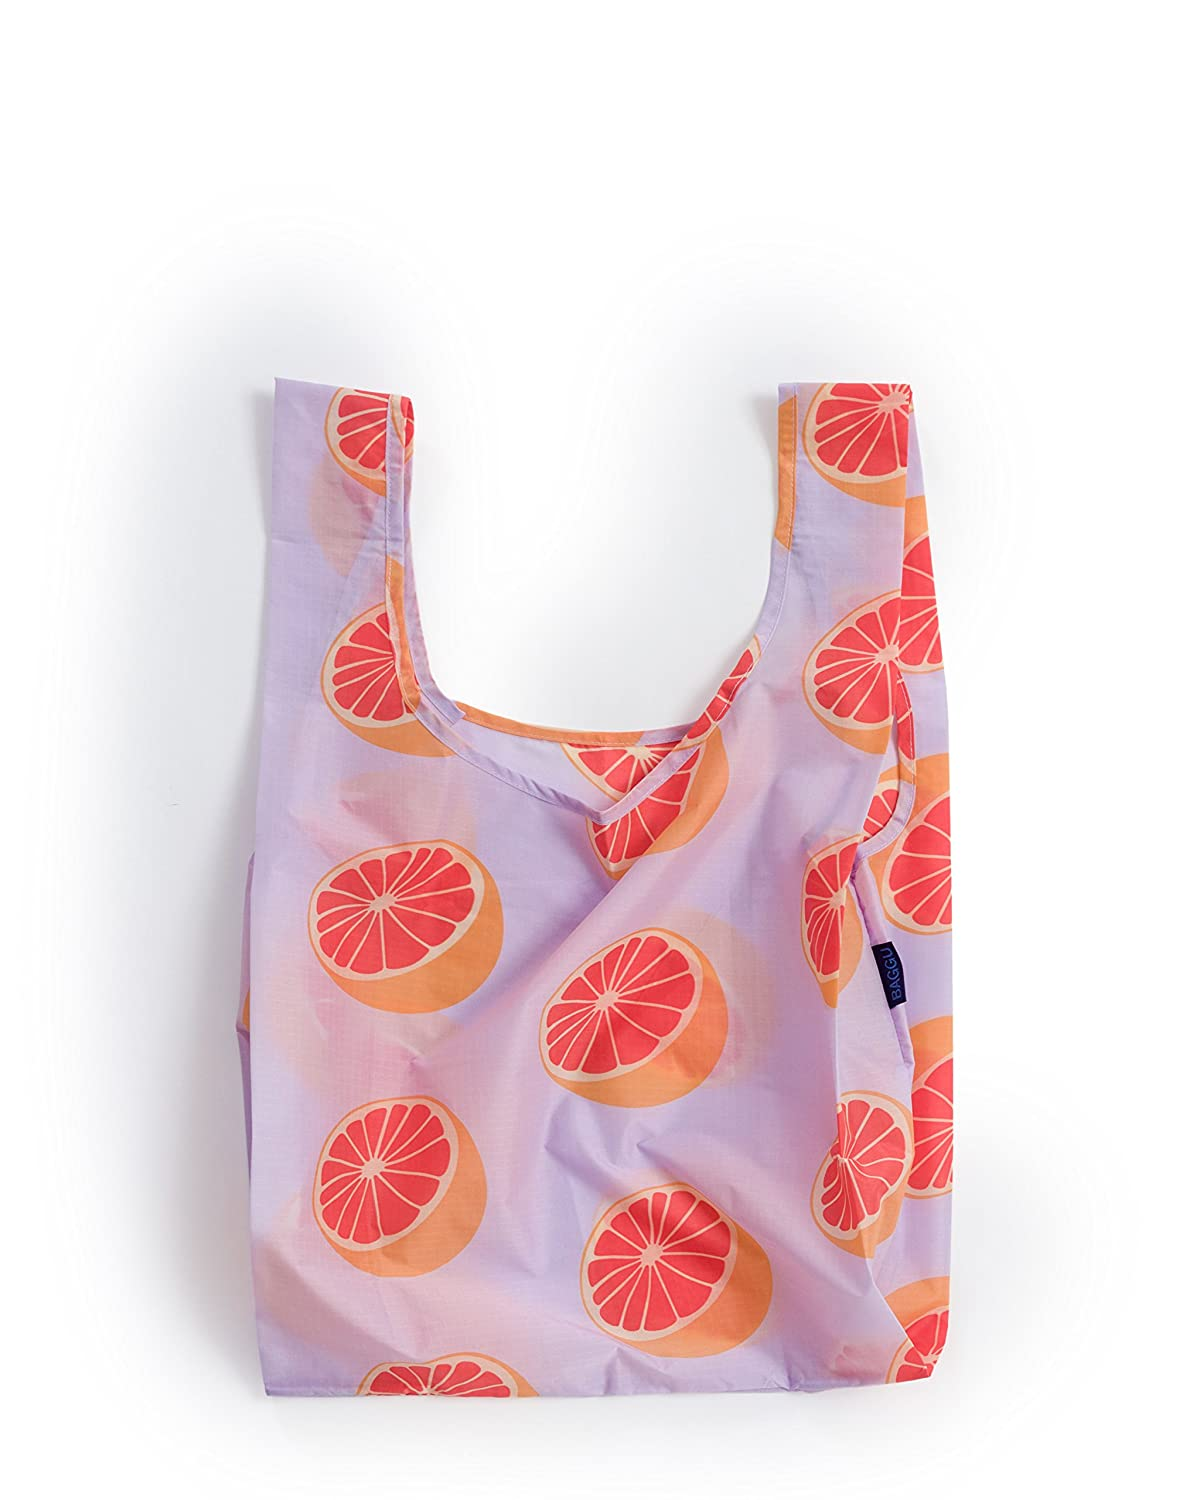 Baggu Standard Reusable Shopping Bag, Eco Friendly Ripstop Nylon Foldable Grocery Tote, Grapefruit by Baggu